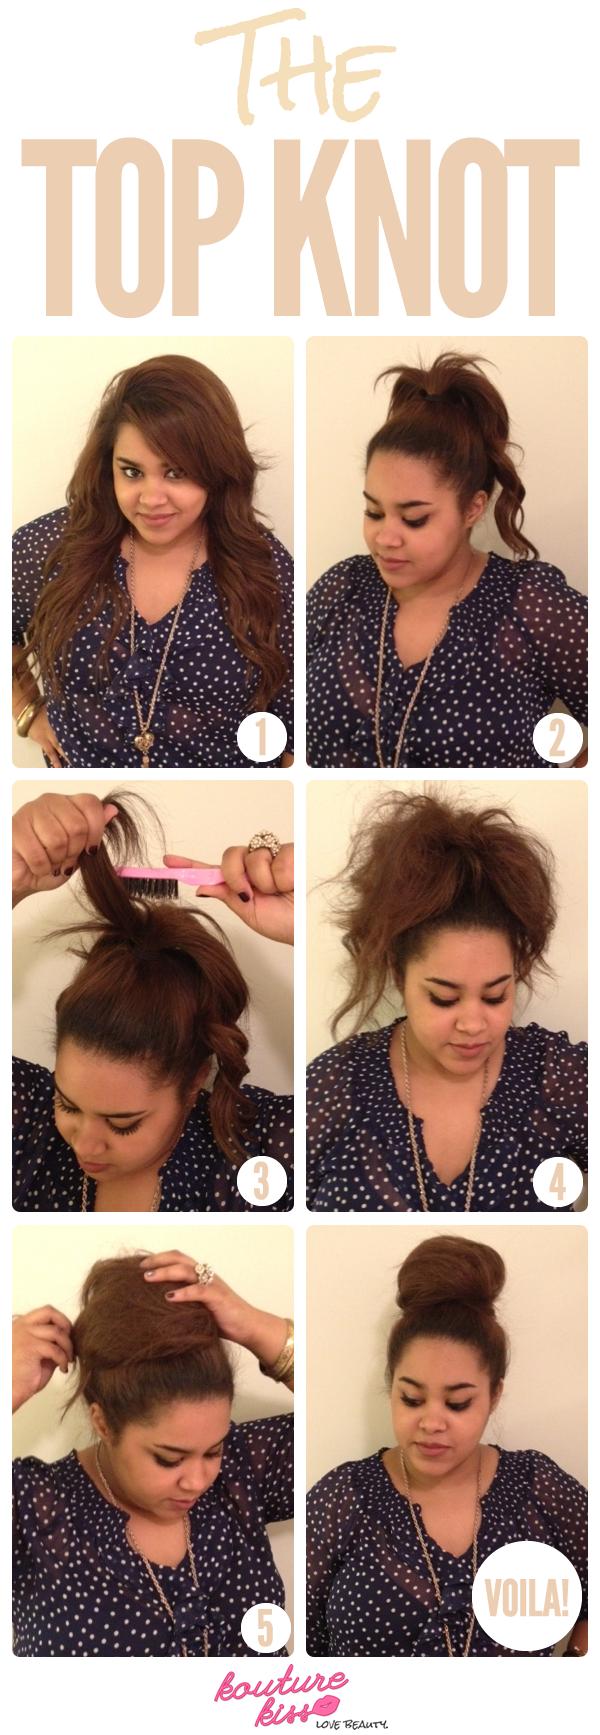 ways to take your top knot game to the next level hair style